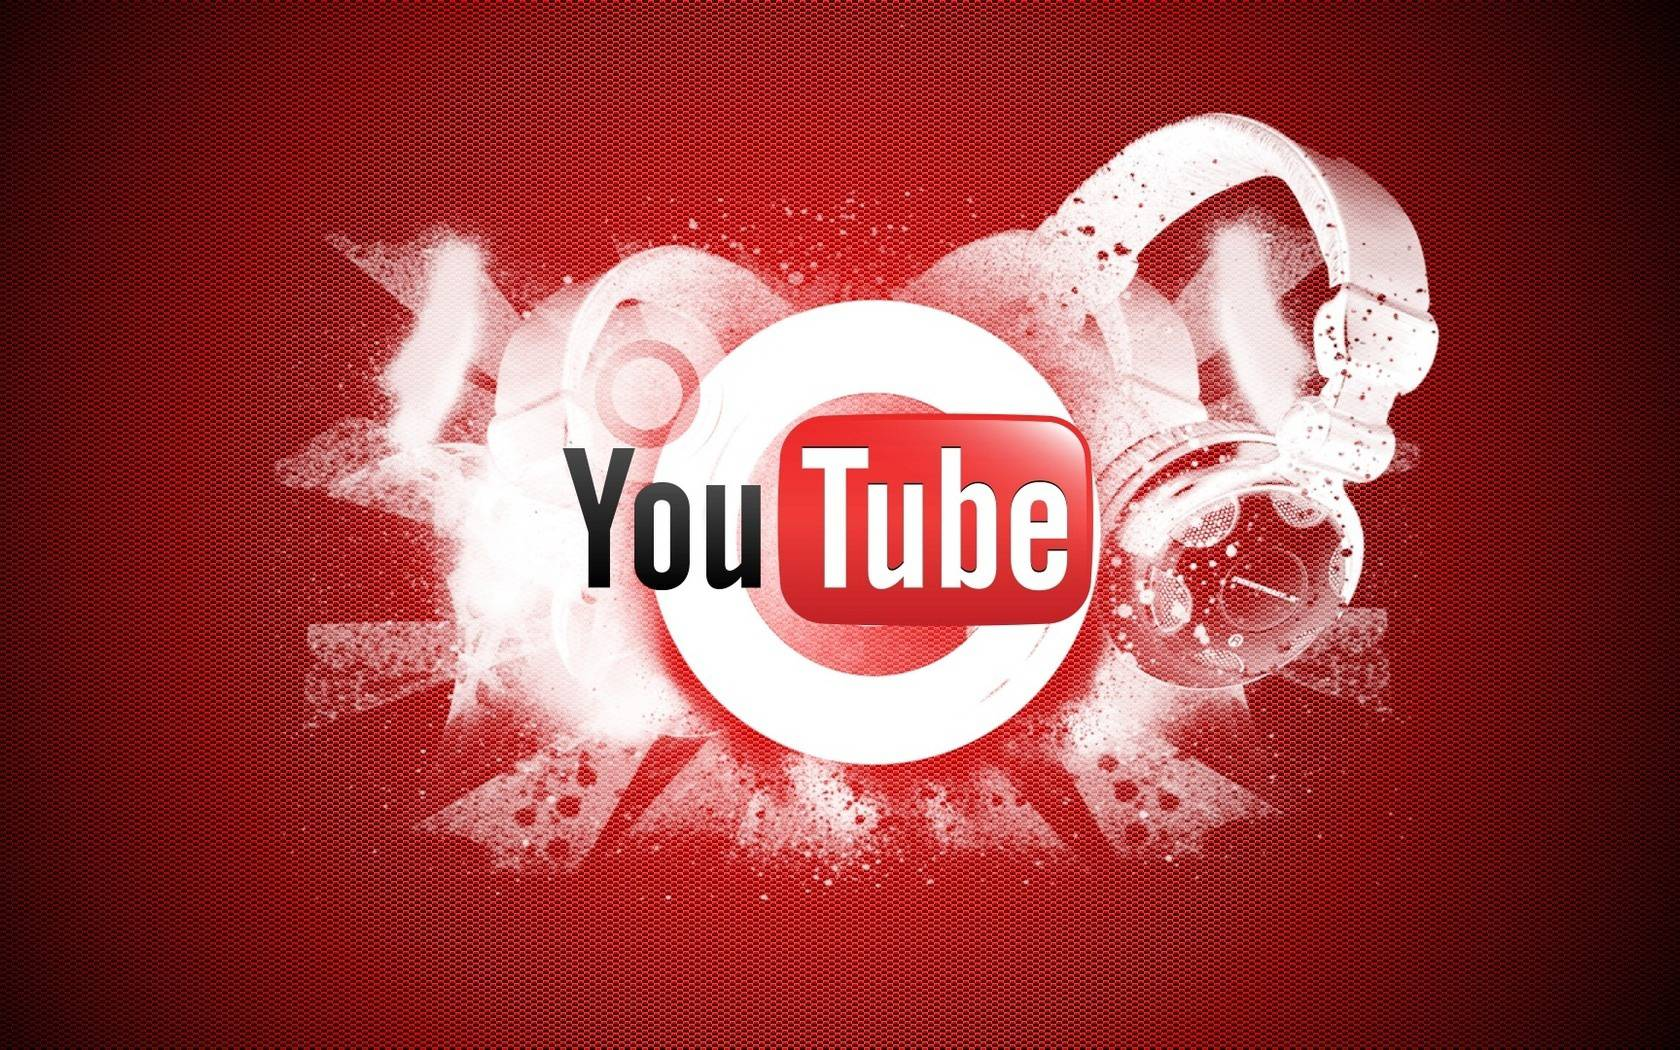 Cool Wallpapers For Youtube